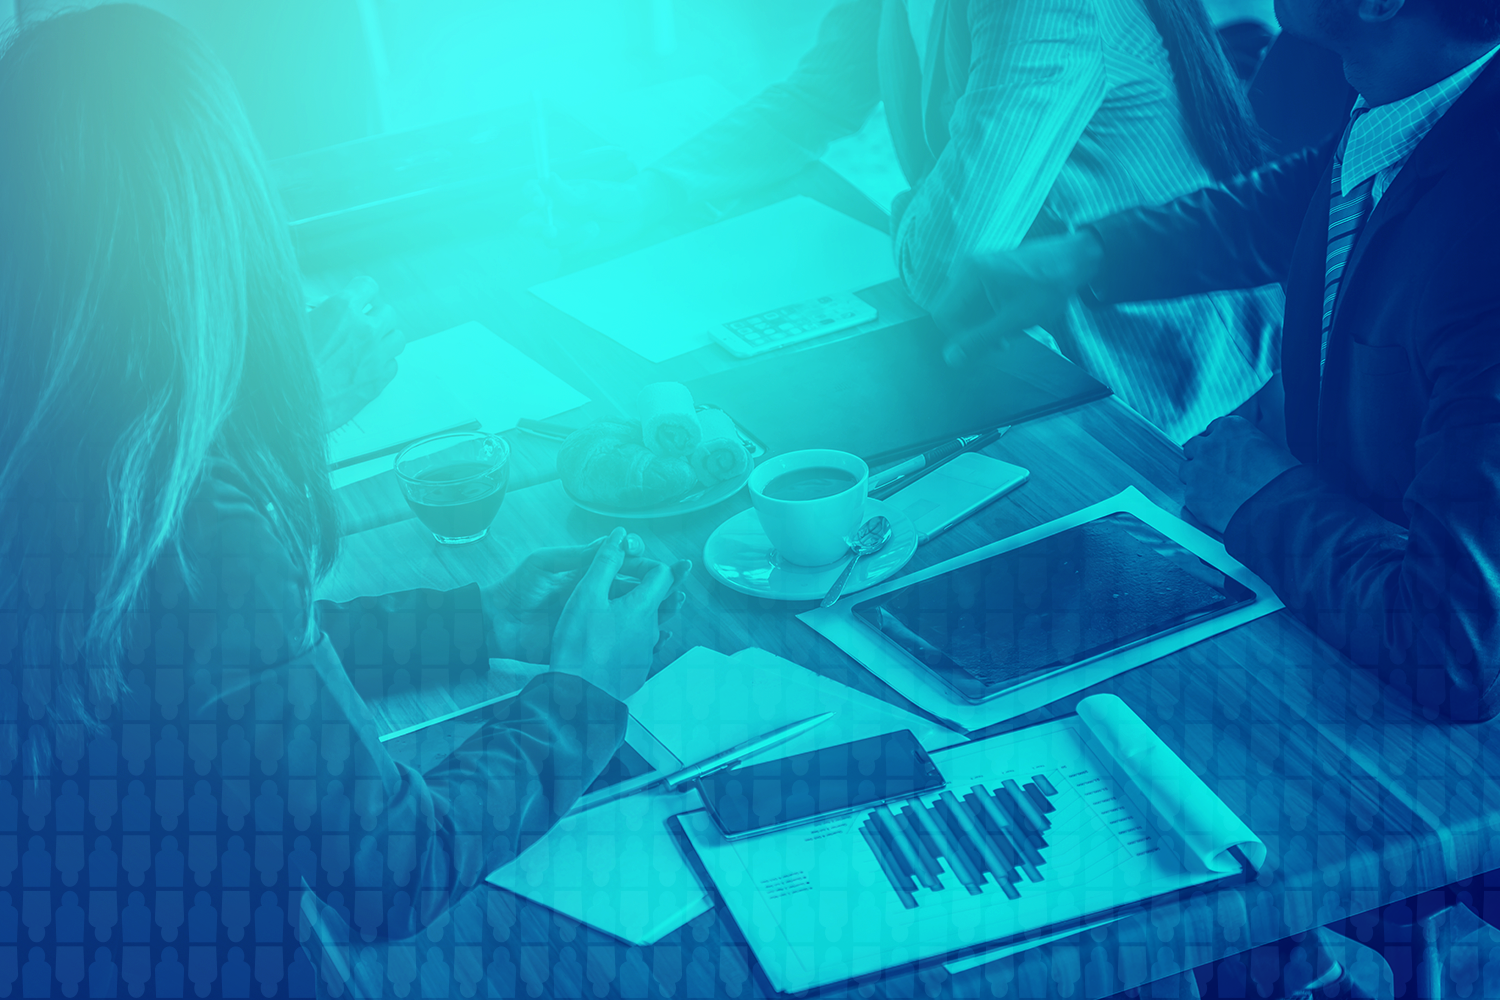 color-treated image of a group of business people discussing strategy over coffee at a table with devices and charts